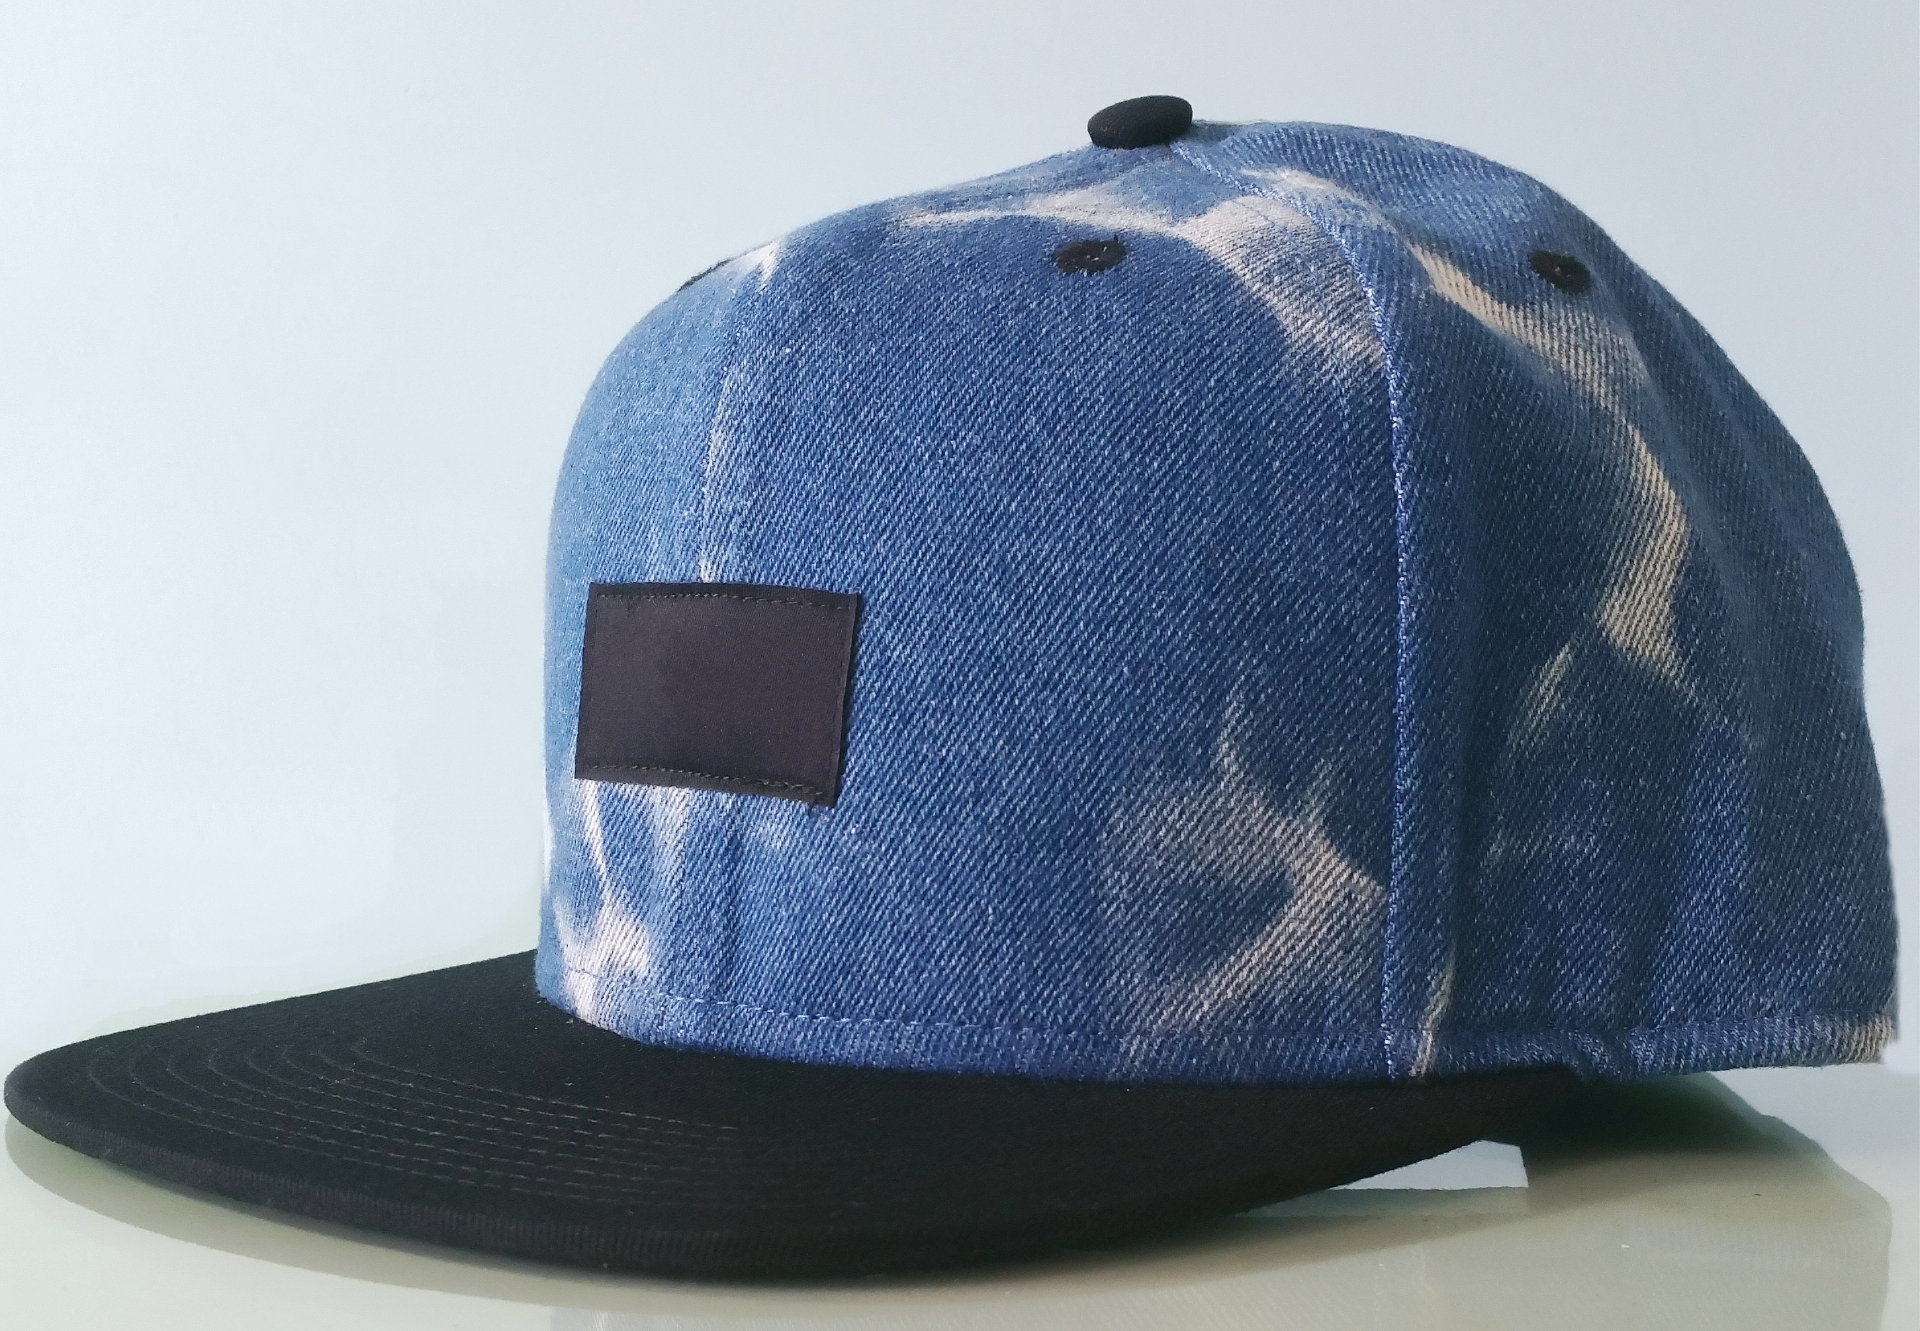 Fashion blue denim cap with black woven label snapback cap